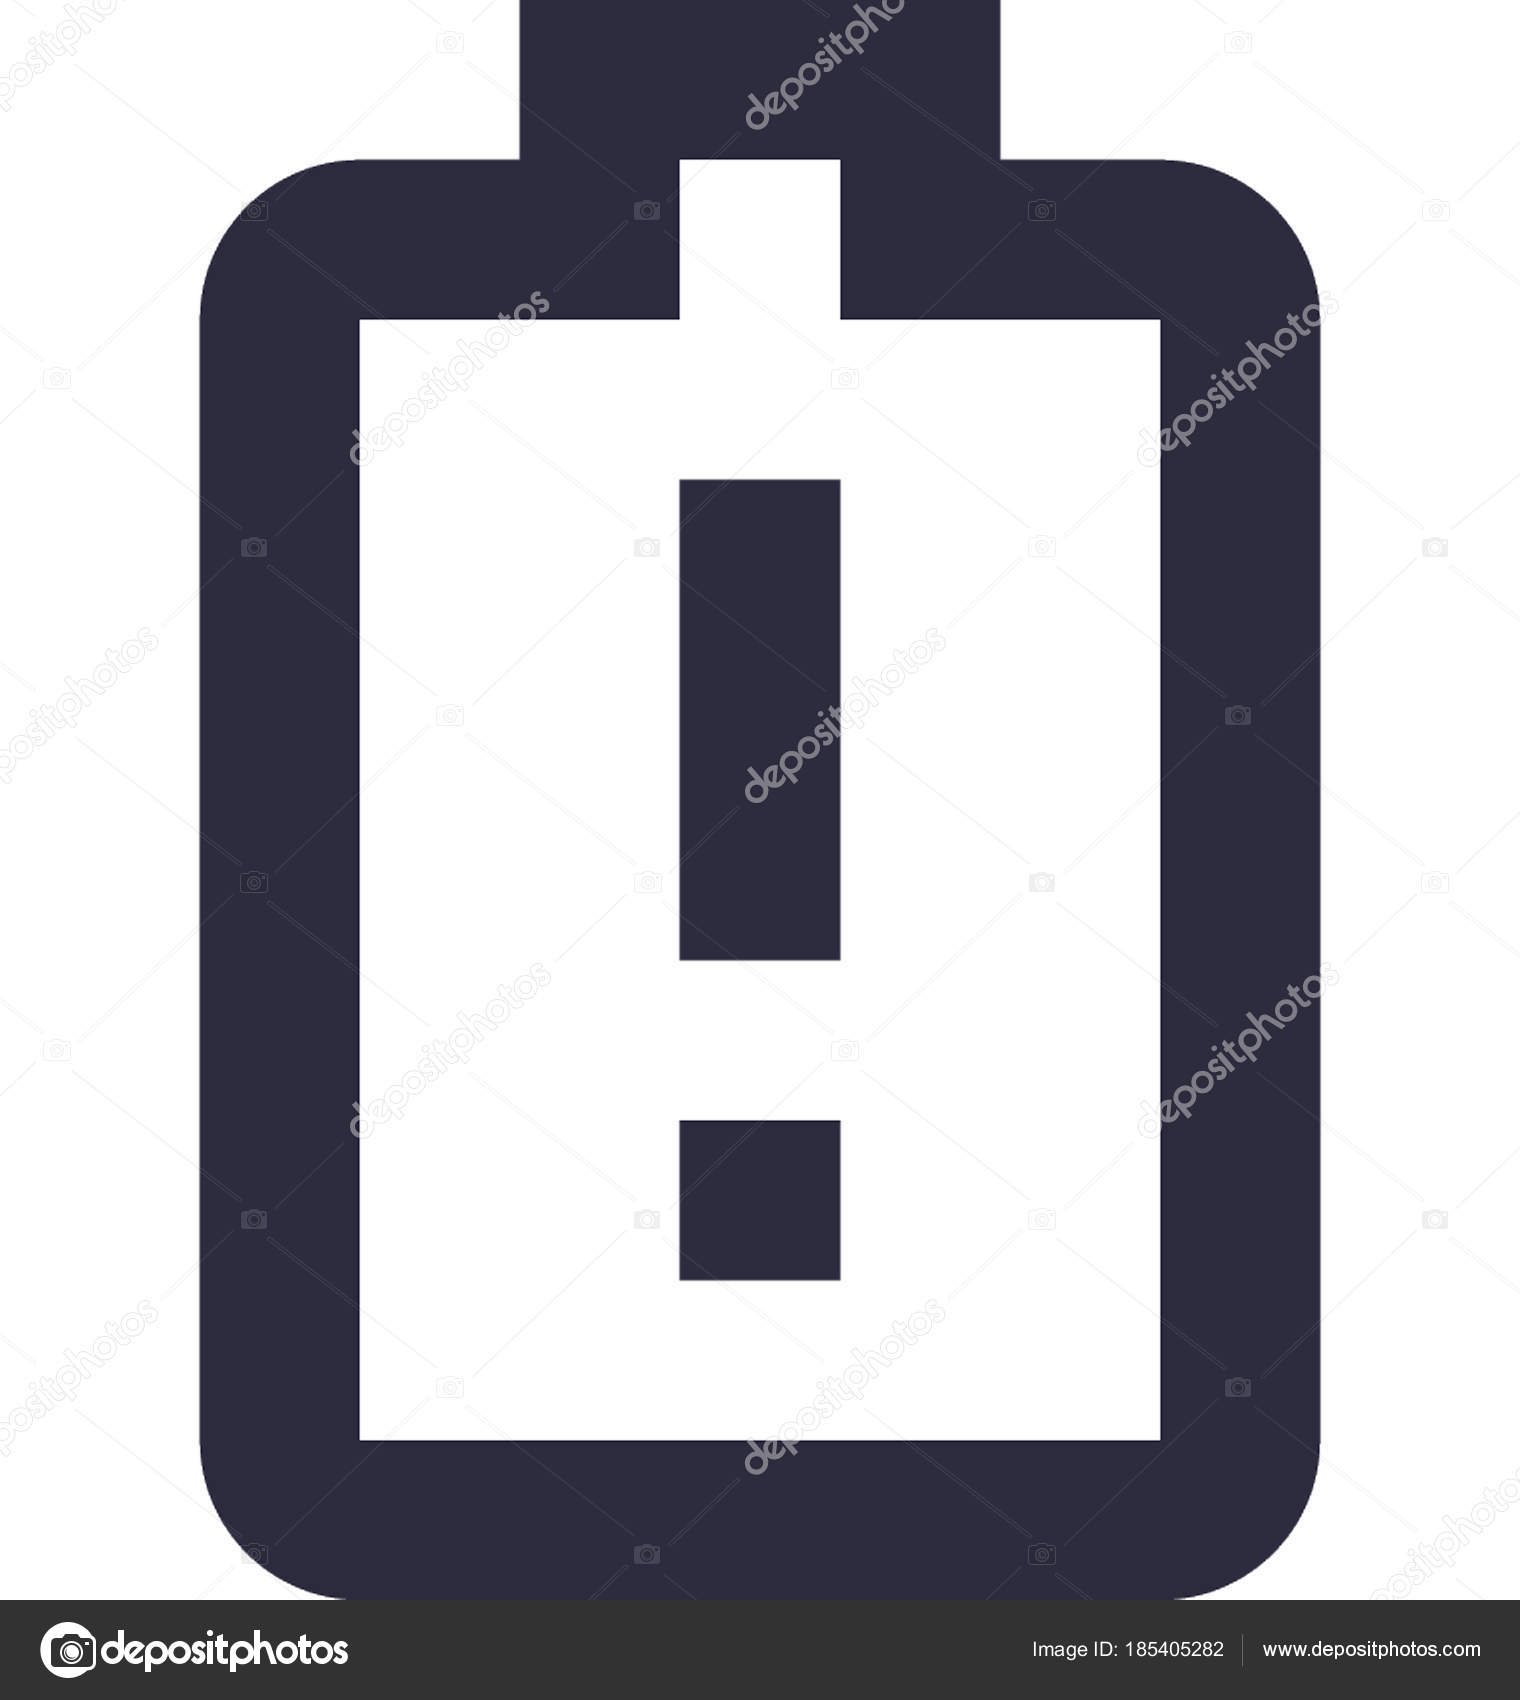 low battery vector icon stock vector c prosymbols 185405282 depositphotos